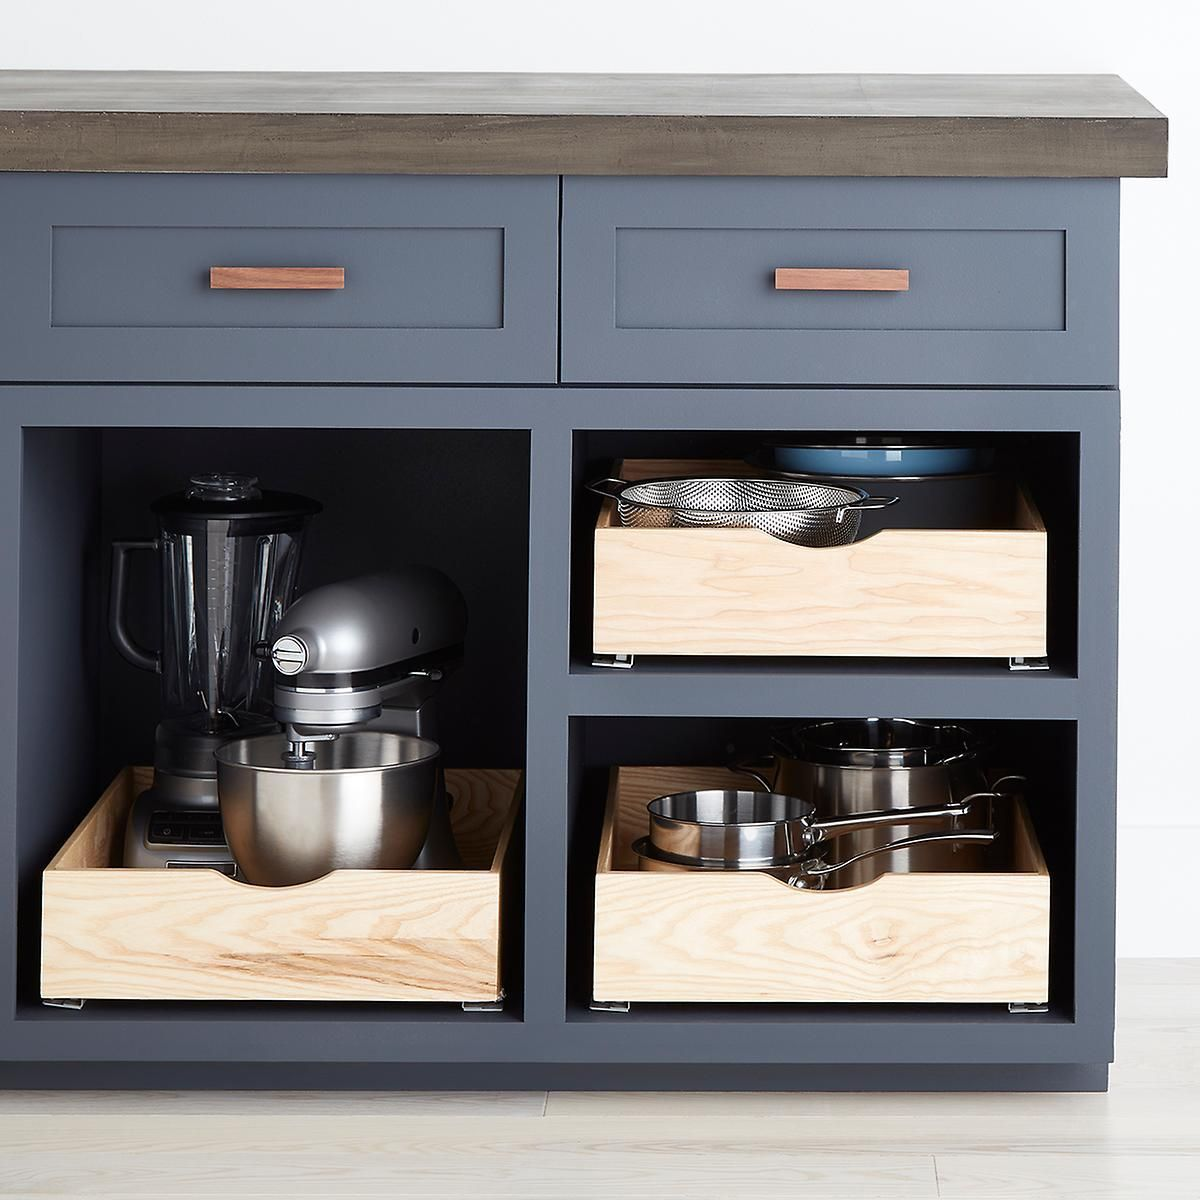 Ash Wood Roll Out Cabinet Drawers Kitchen Cabinet Storage Cabinet Drawers Update Kitchen Cabinets